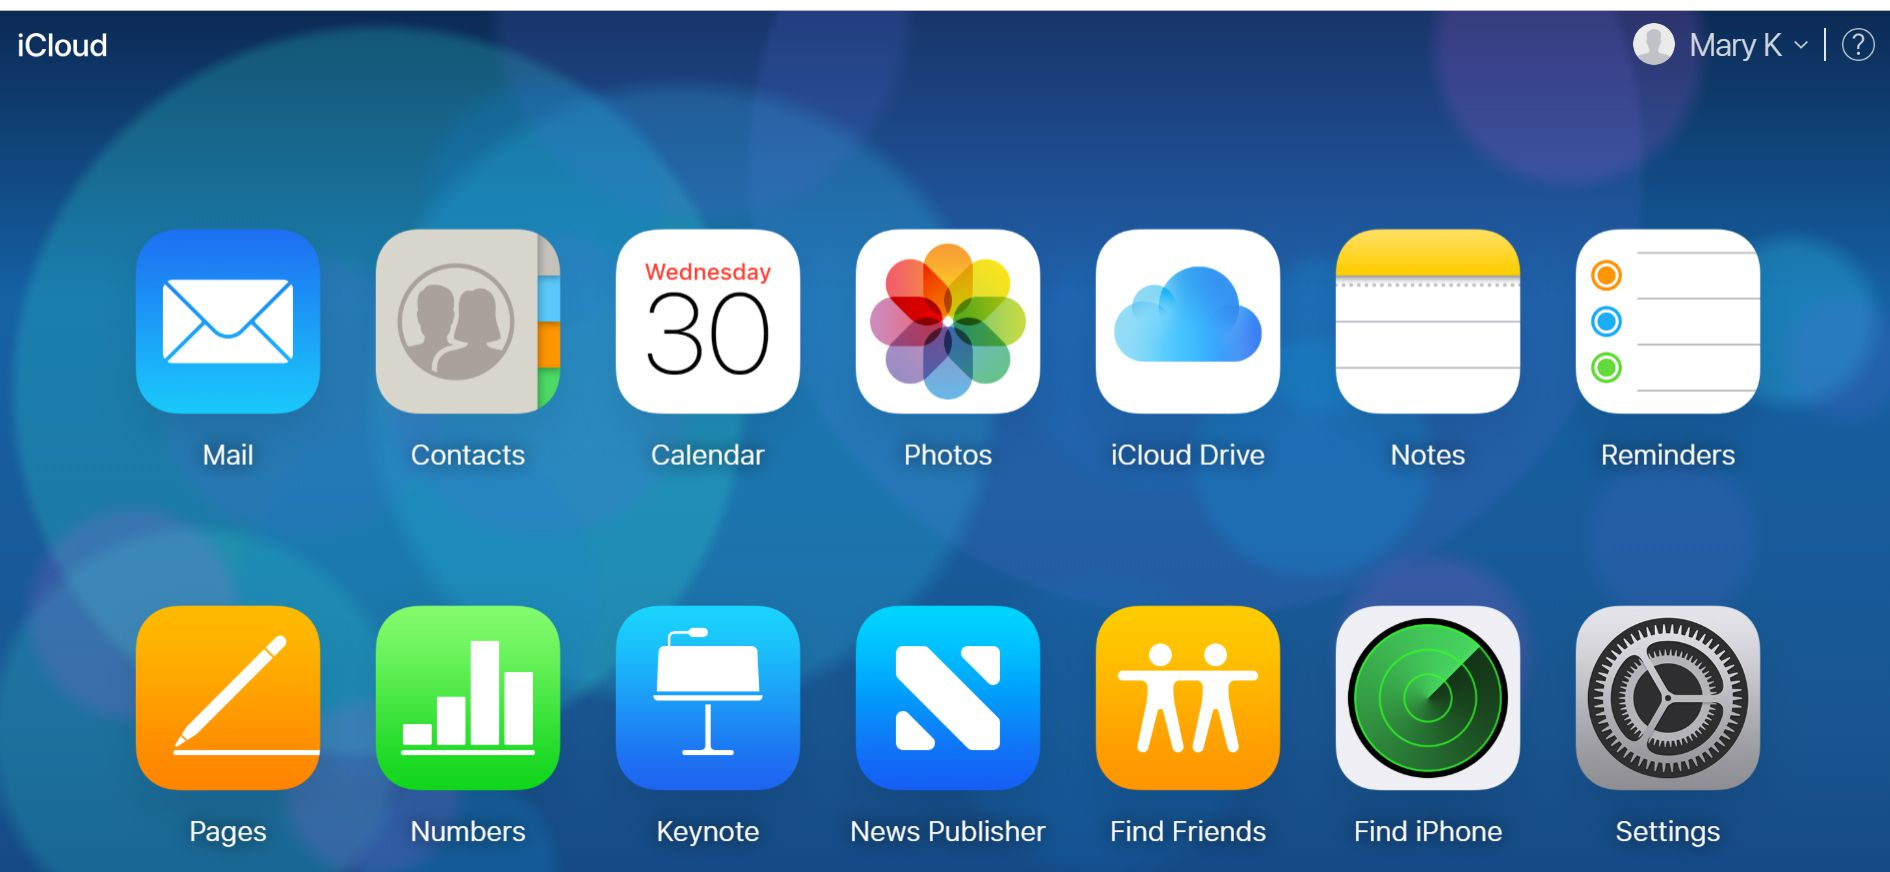 The iCloud.com homepage with icons for mail, contacts, calendar, and other apps.